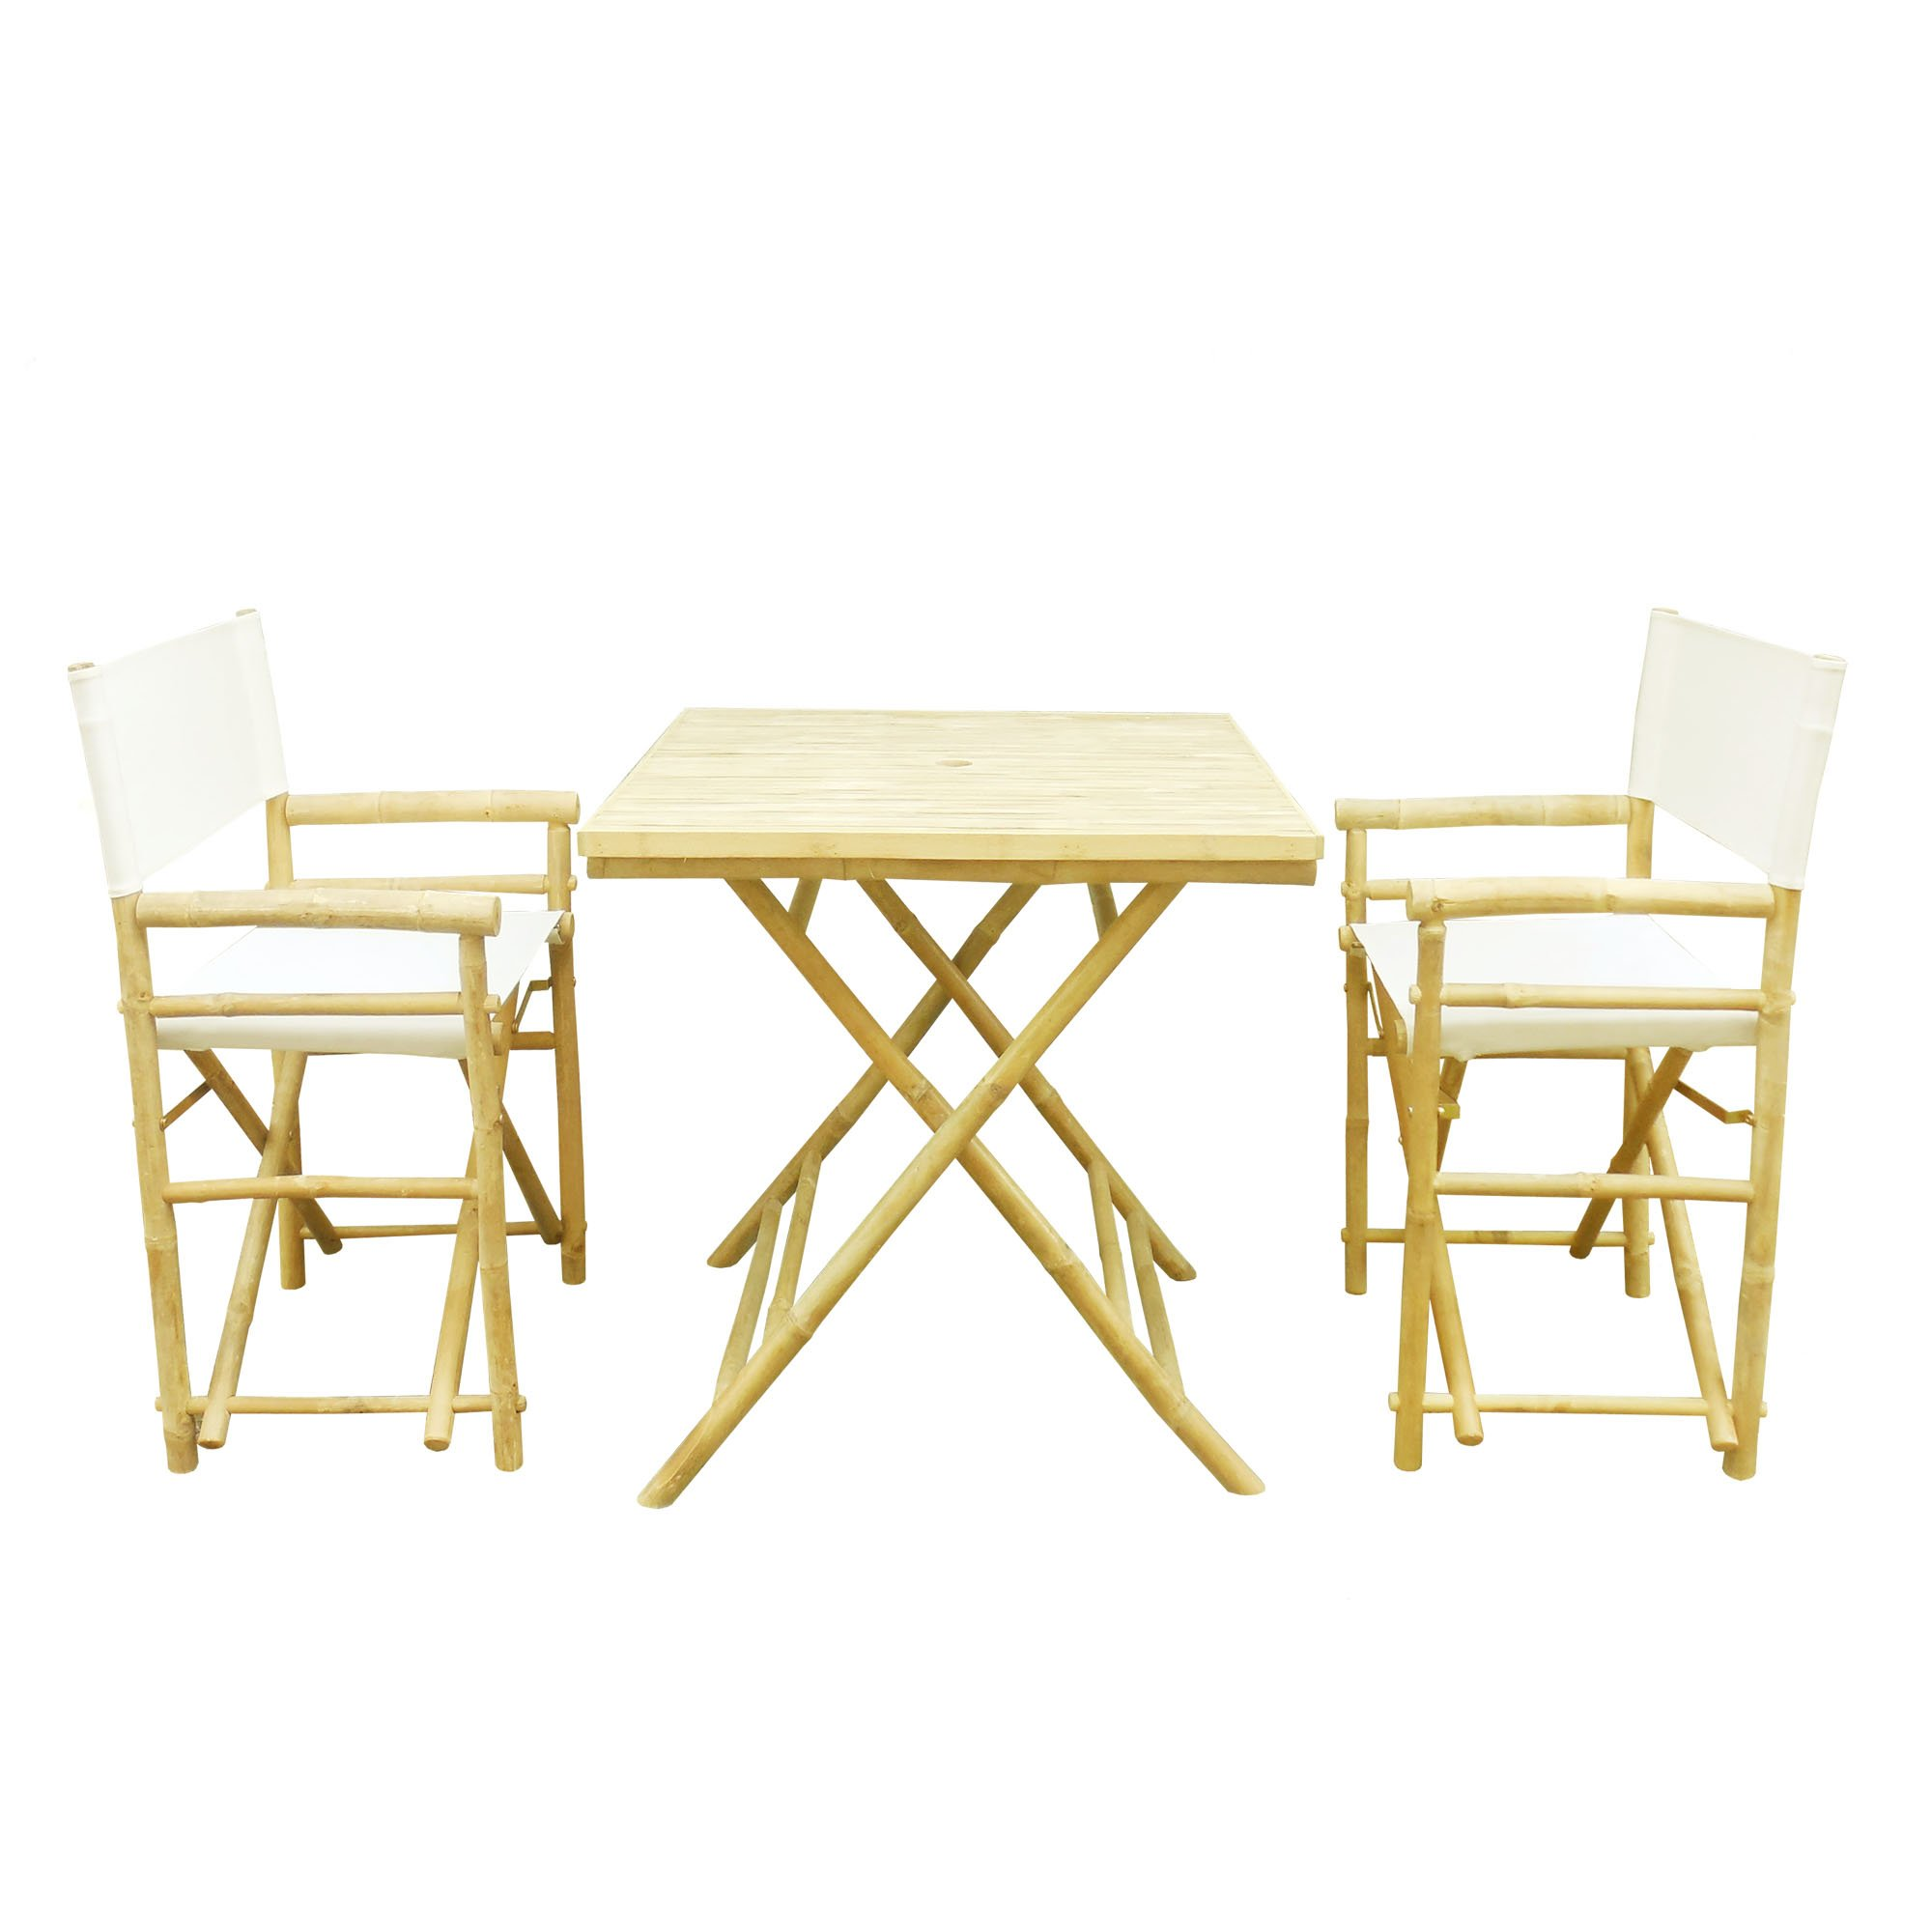 Zero Emission World Set-012-03 Set Of 1 Square Table (Ta-142) + 2 Director Chairs (Each Canvas-White, Natural, 31.5X31.5X29.5 22.83X18.11X35.43